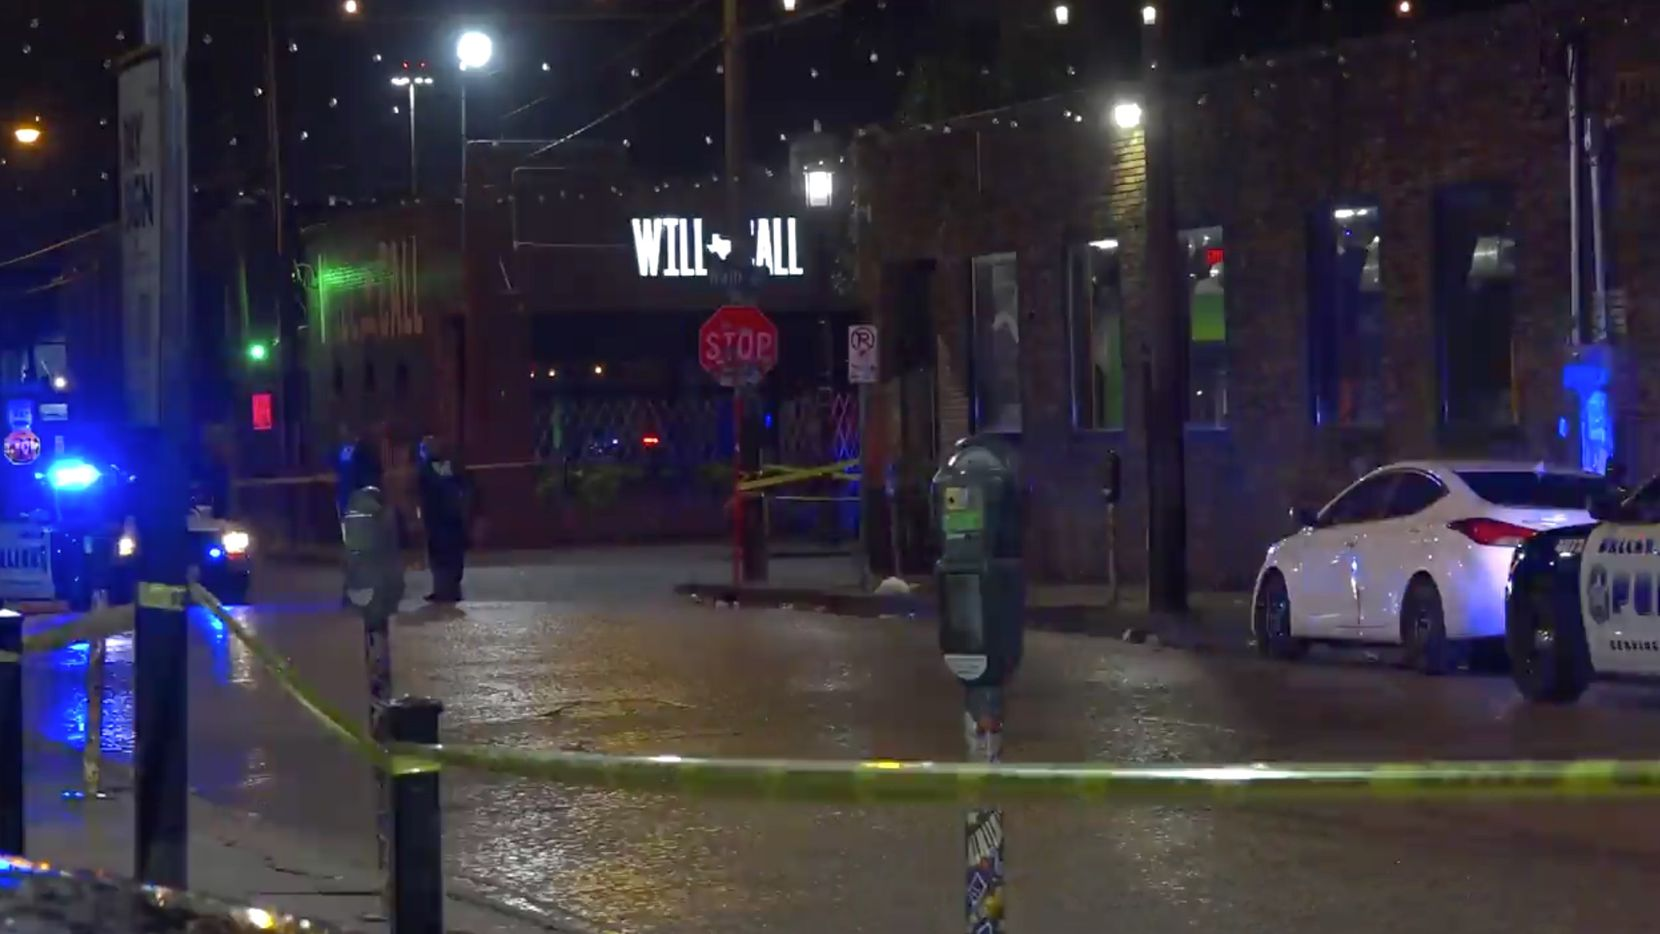 Police say two people were shot early Sunday, July 11, 2021 near Main Street and Crowdus Street in Deep Ellum.